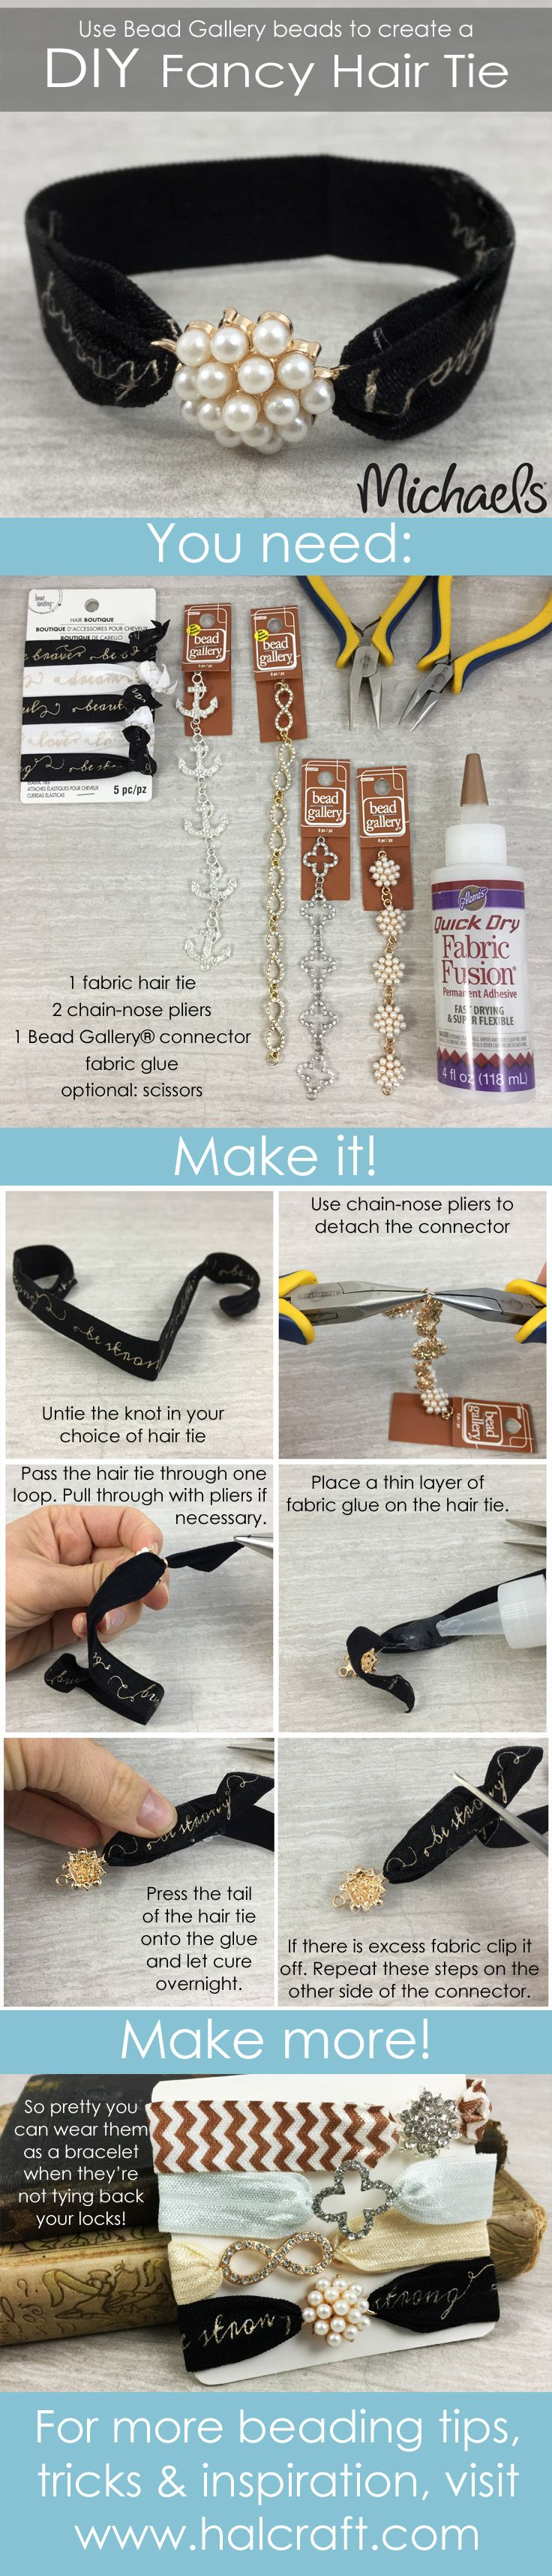 1000 ideas about jewelry supplies on pinterest jewelry for Michaels crafts jewelry supplies